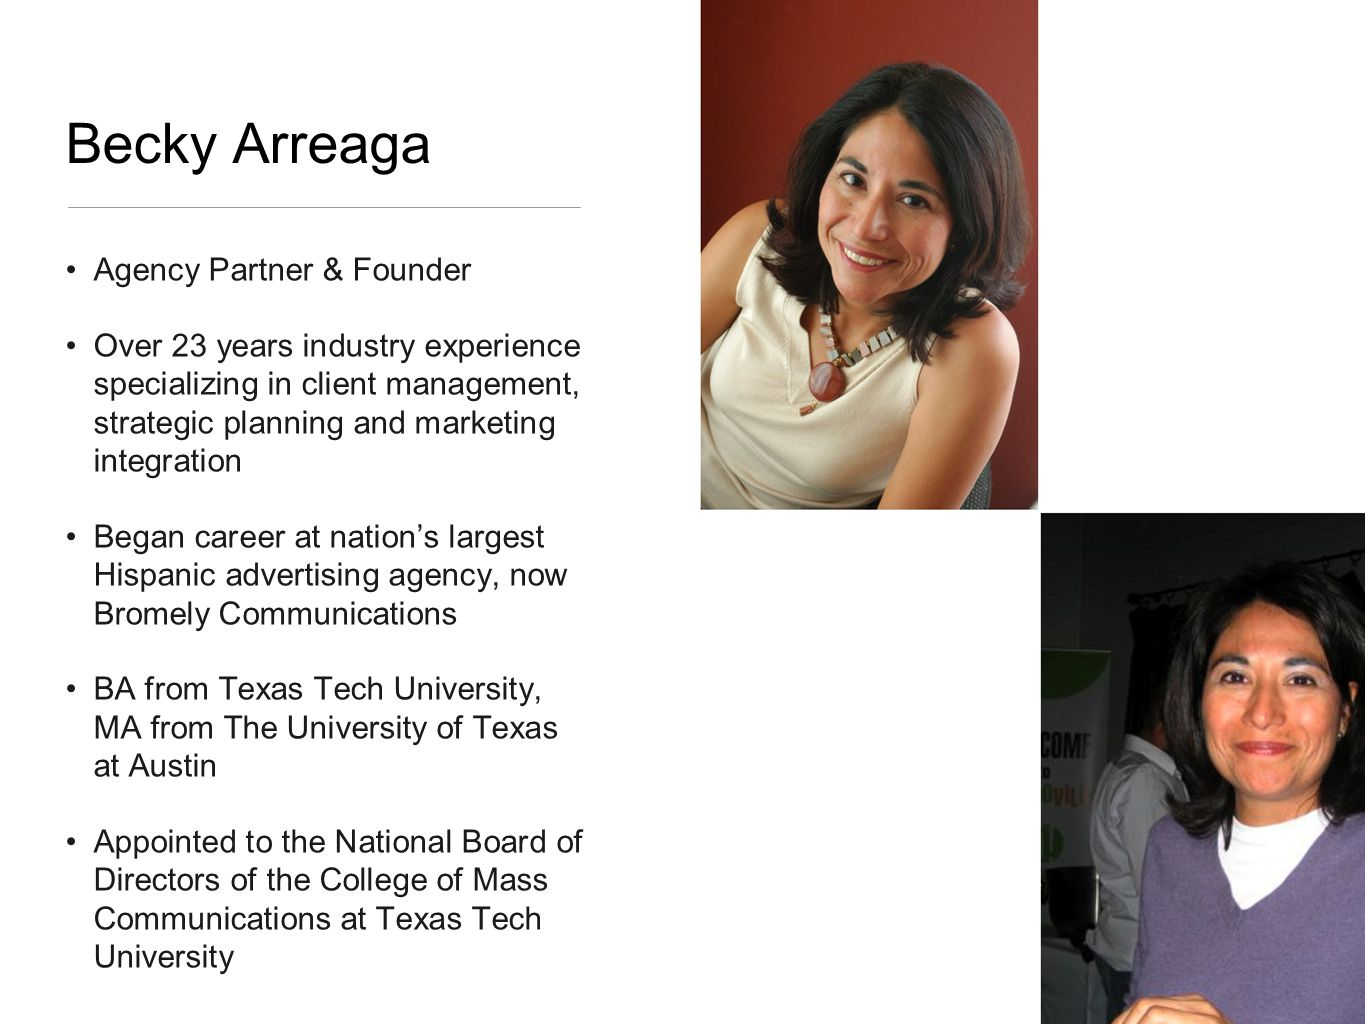 Full-service Hispanic agency specialize in strategic below-the-line marketing driven by real-time consumer and marketplace insights Seasoned team of marketing junkies with 20+ years experience in segment marketing and sales activation Network of Market Ambassadors in the top 25 Hispanic markets Based in Austin, TX and are 100% minority and woman owned Mercury Mambo